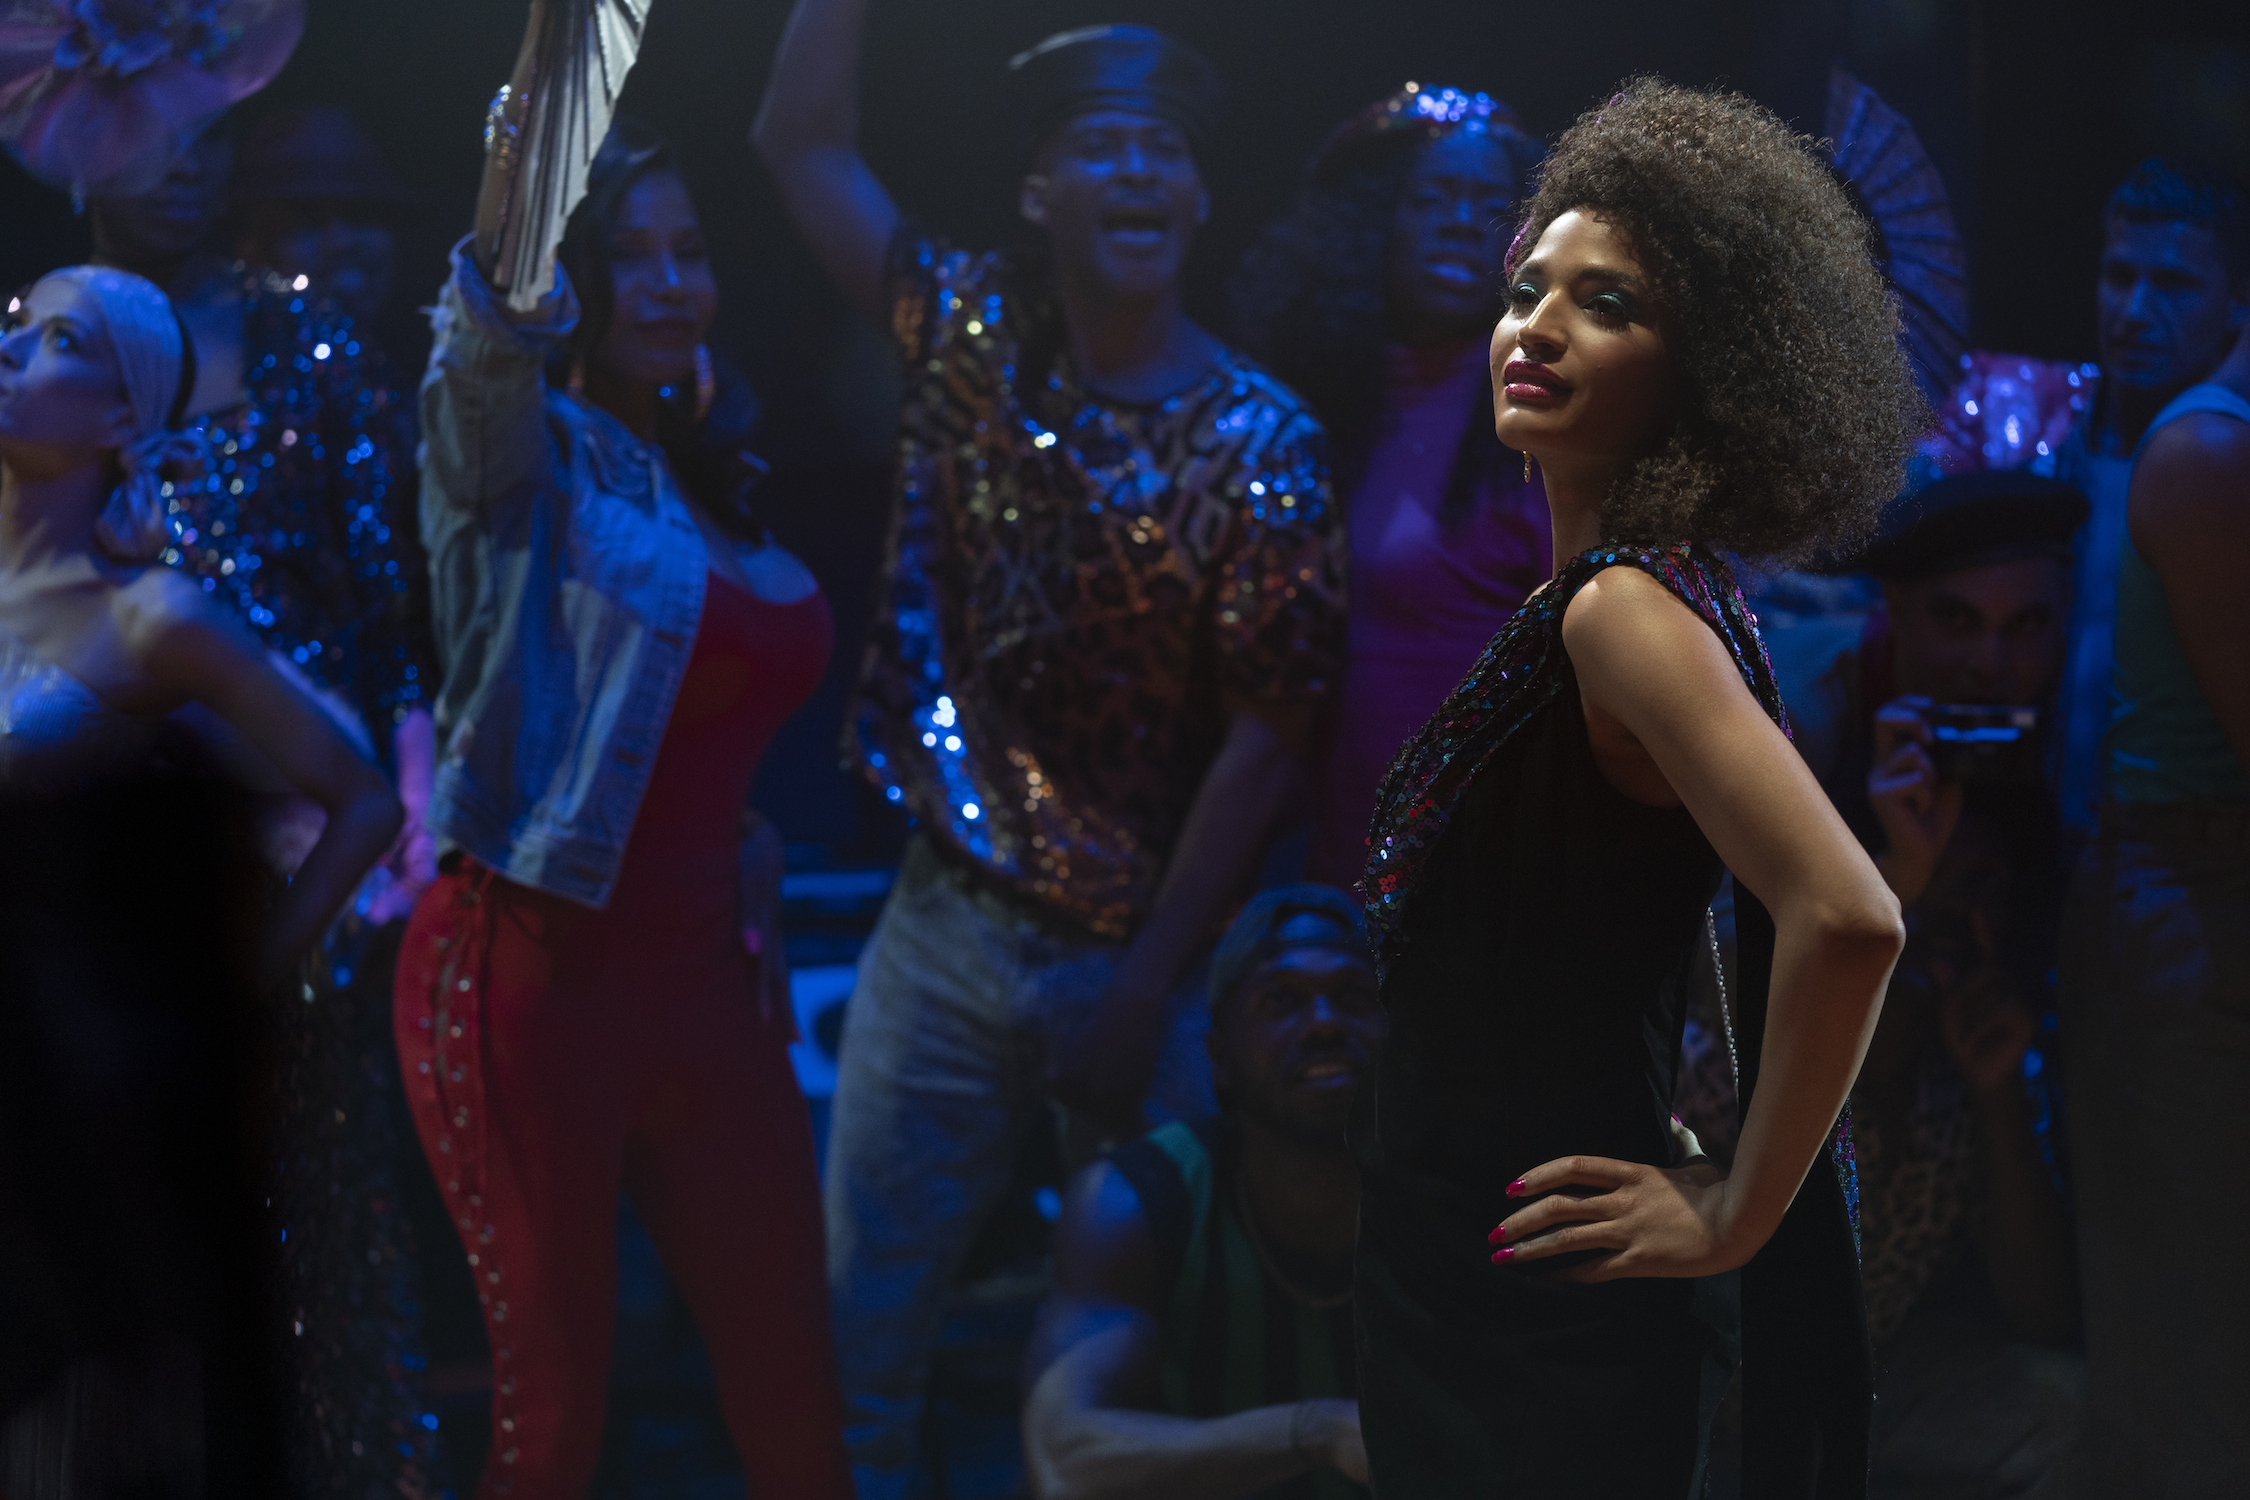 REVIEW: As Sobering as it is Fabulous, 'Pose' Season 2 Remains a Must-Watch